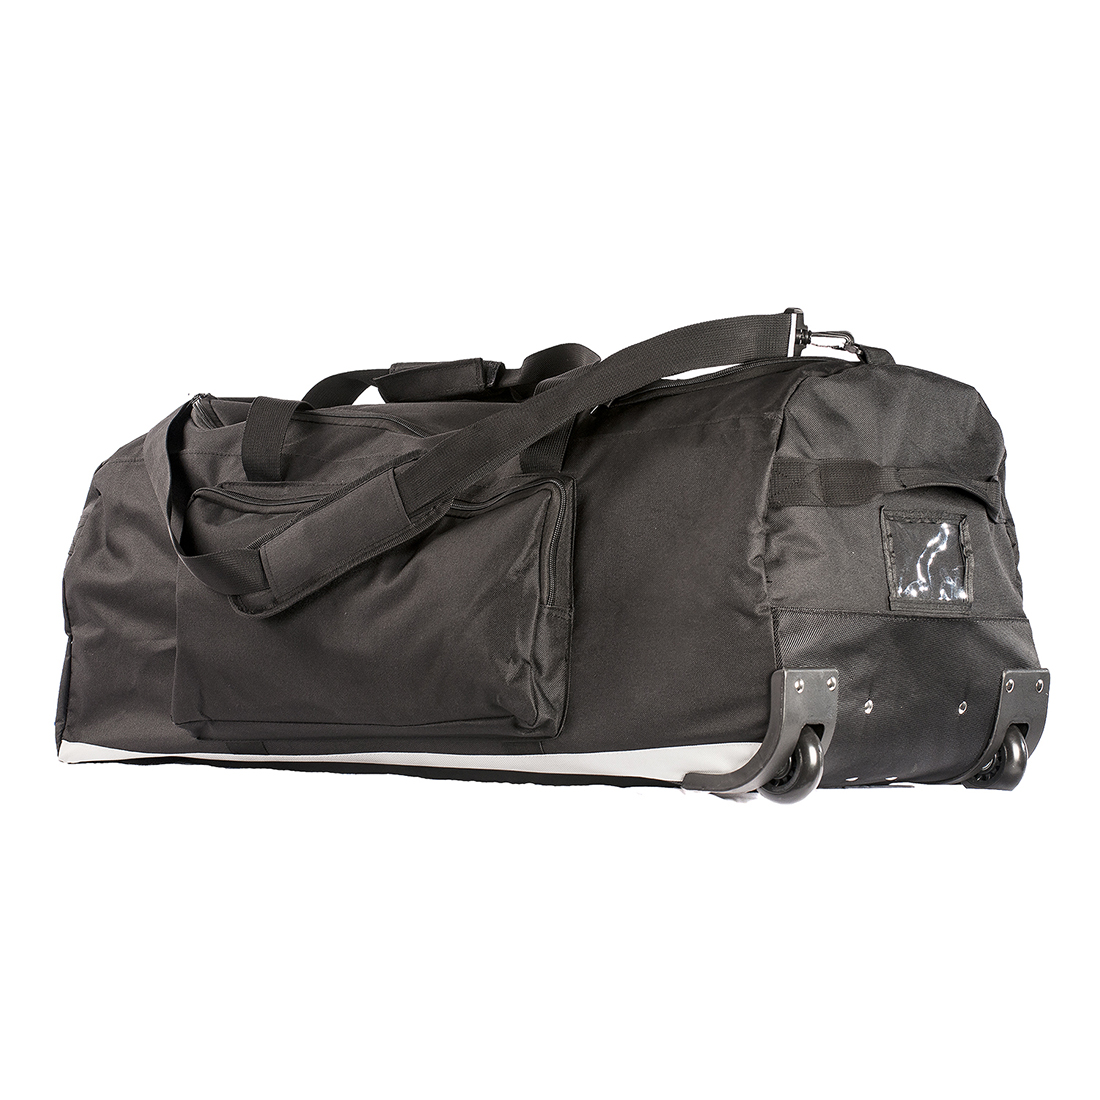 Portwest Travel Trolley Bag - B909